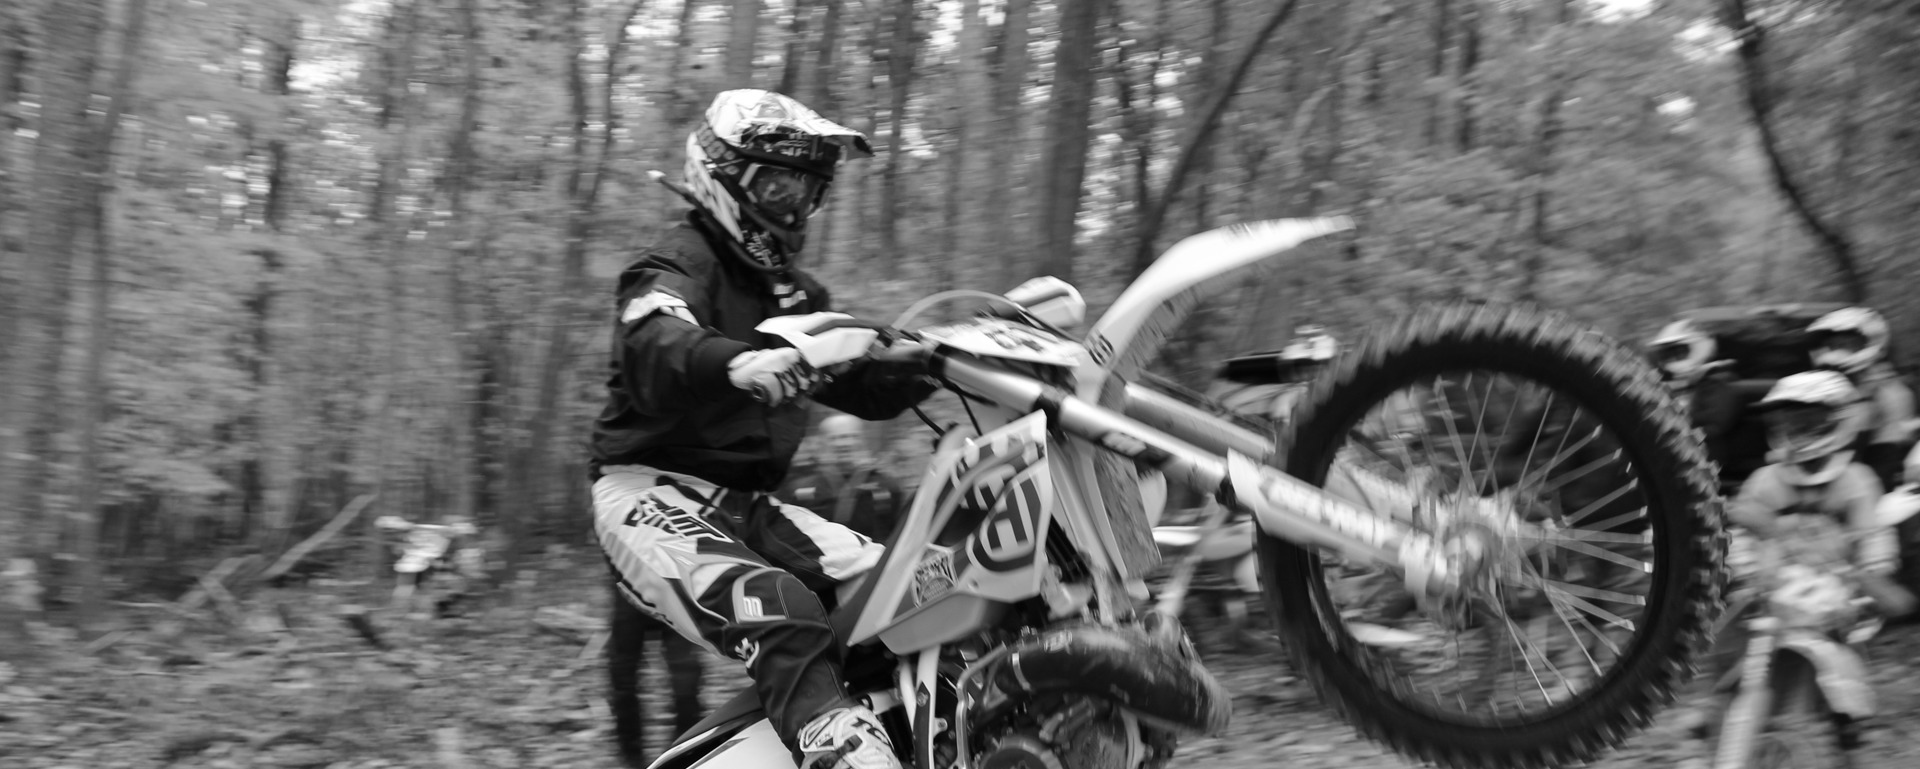 Enduro Riders